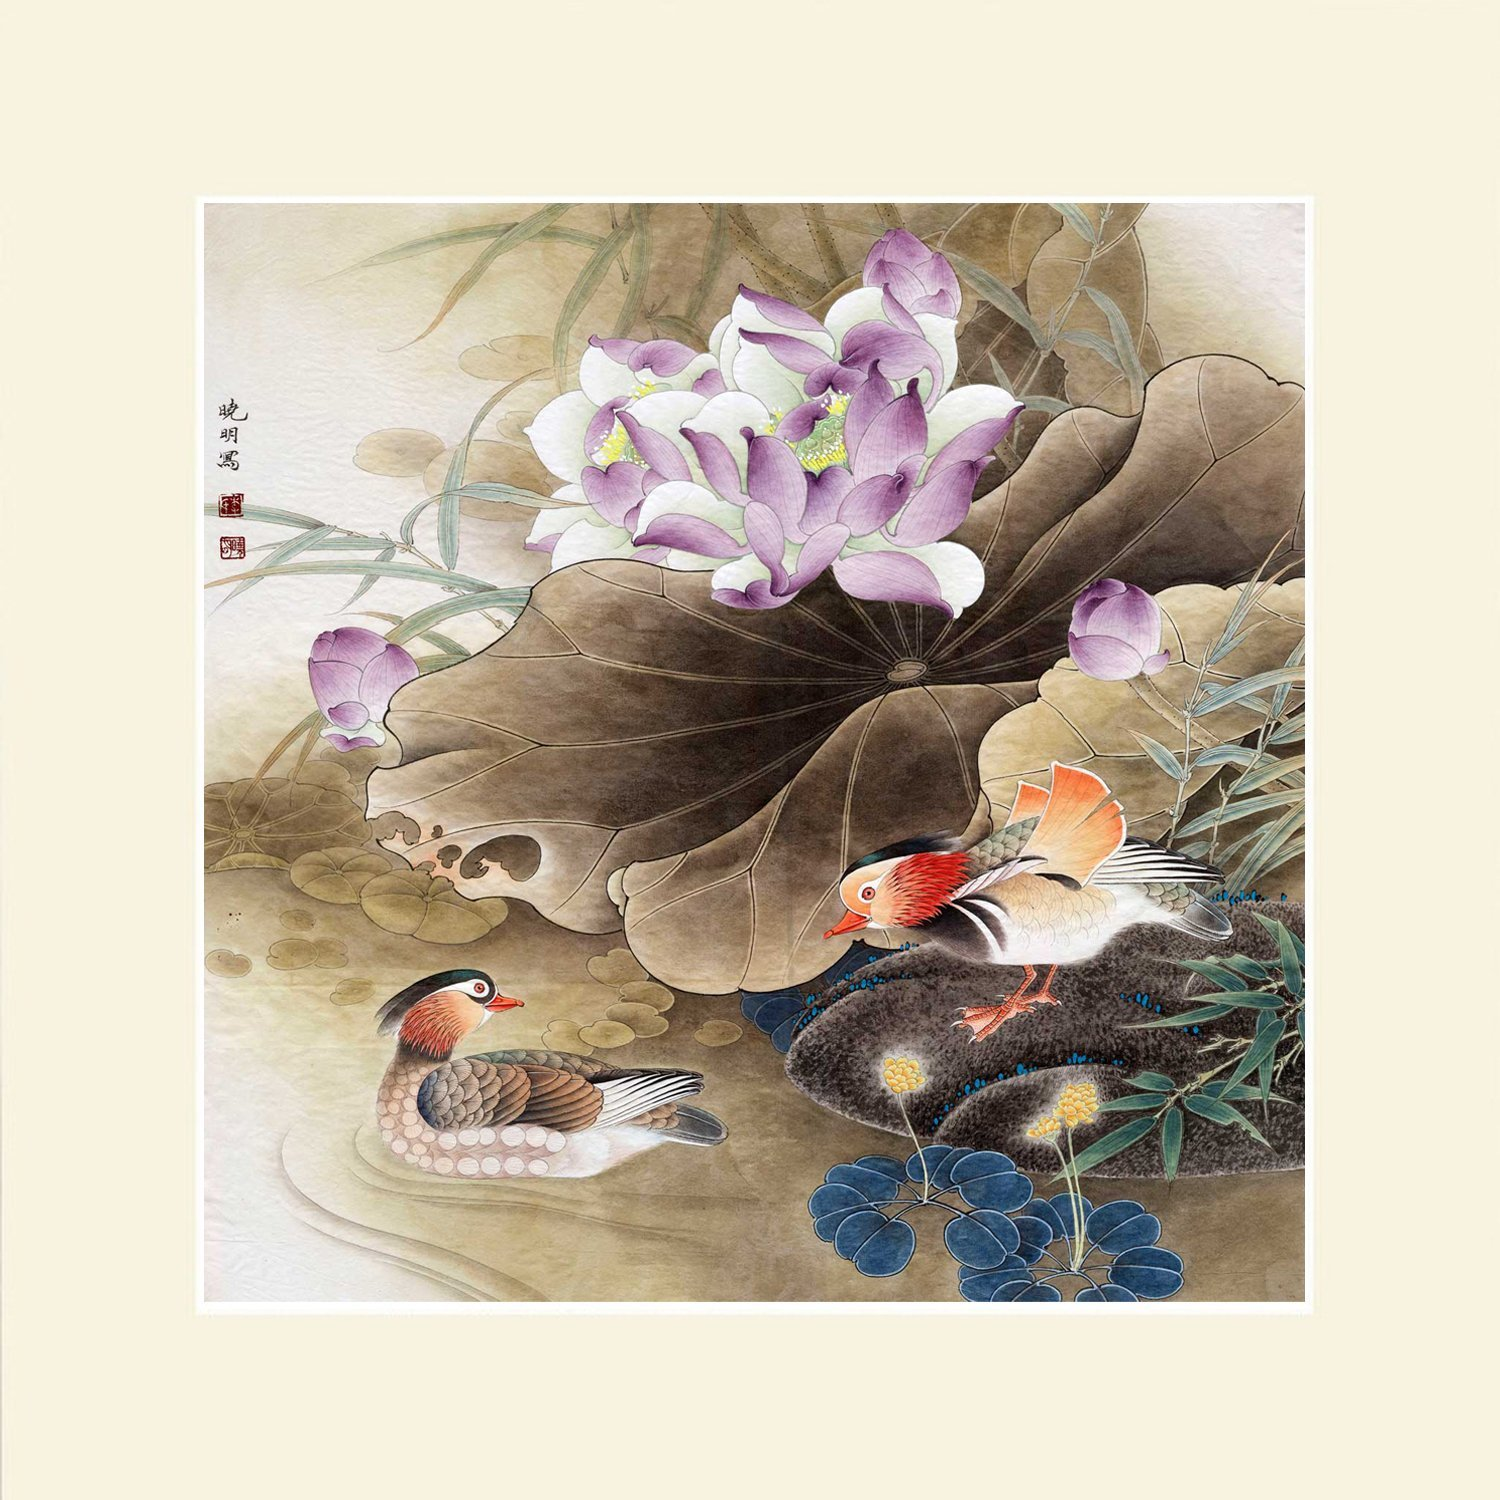 INK WASH Chinese Flower Landscape Painitng of Feng Shui Mandarin Ducks Painting for True Love Activate Relationship Art Wall Artwork for Office Bedroom Living Room 28''x28''